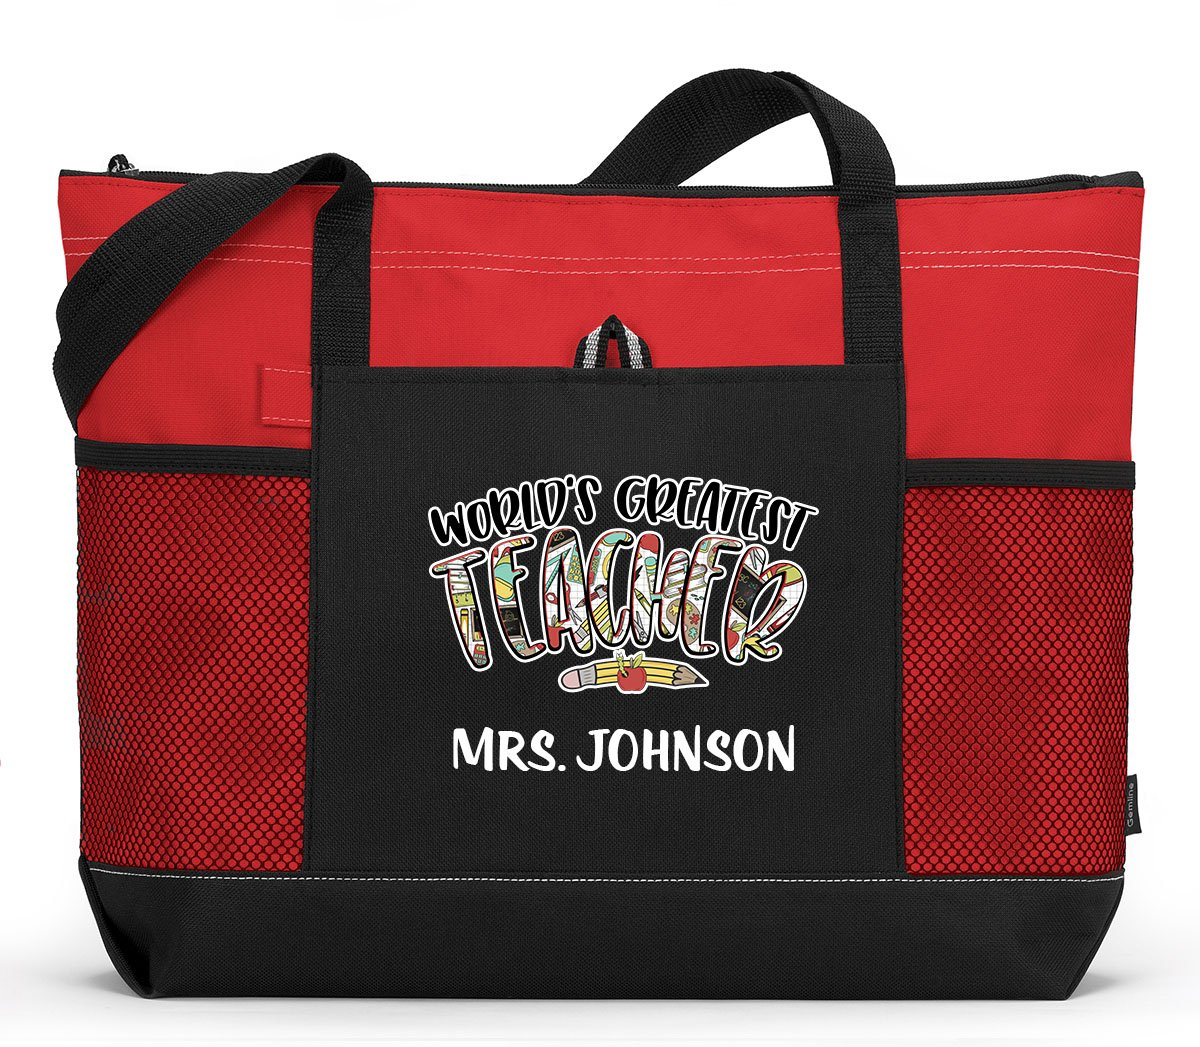 Personalized World's Greatest Teacher Tote Bag with Mesh Pockets